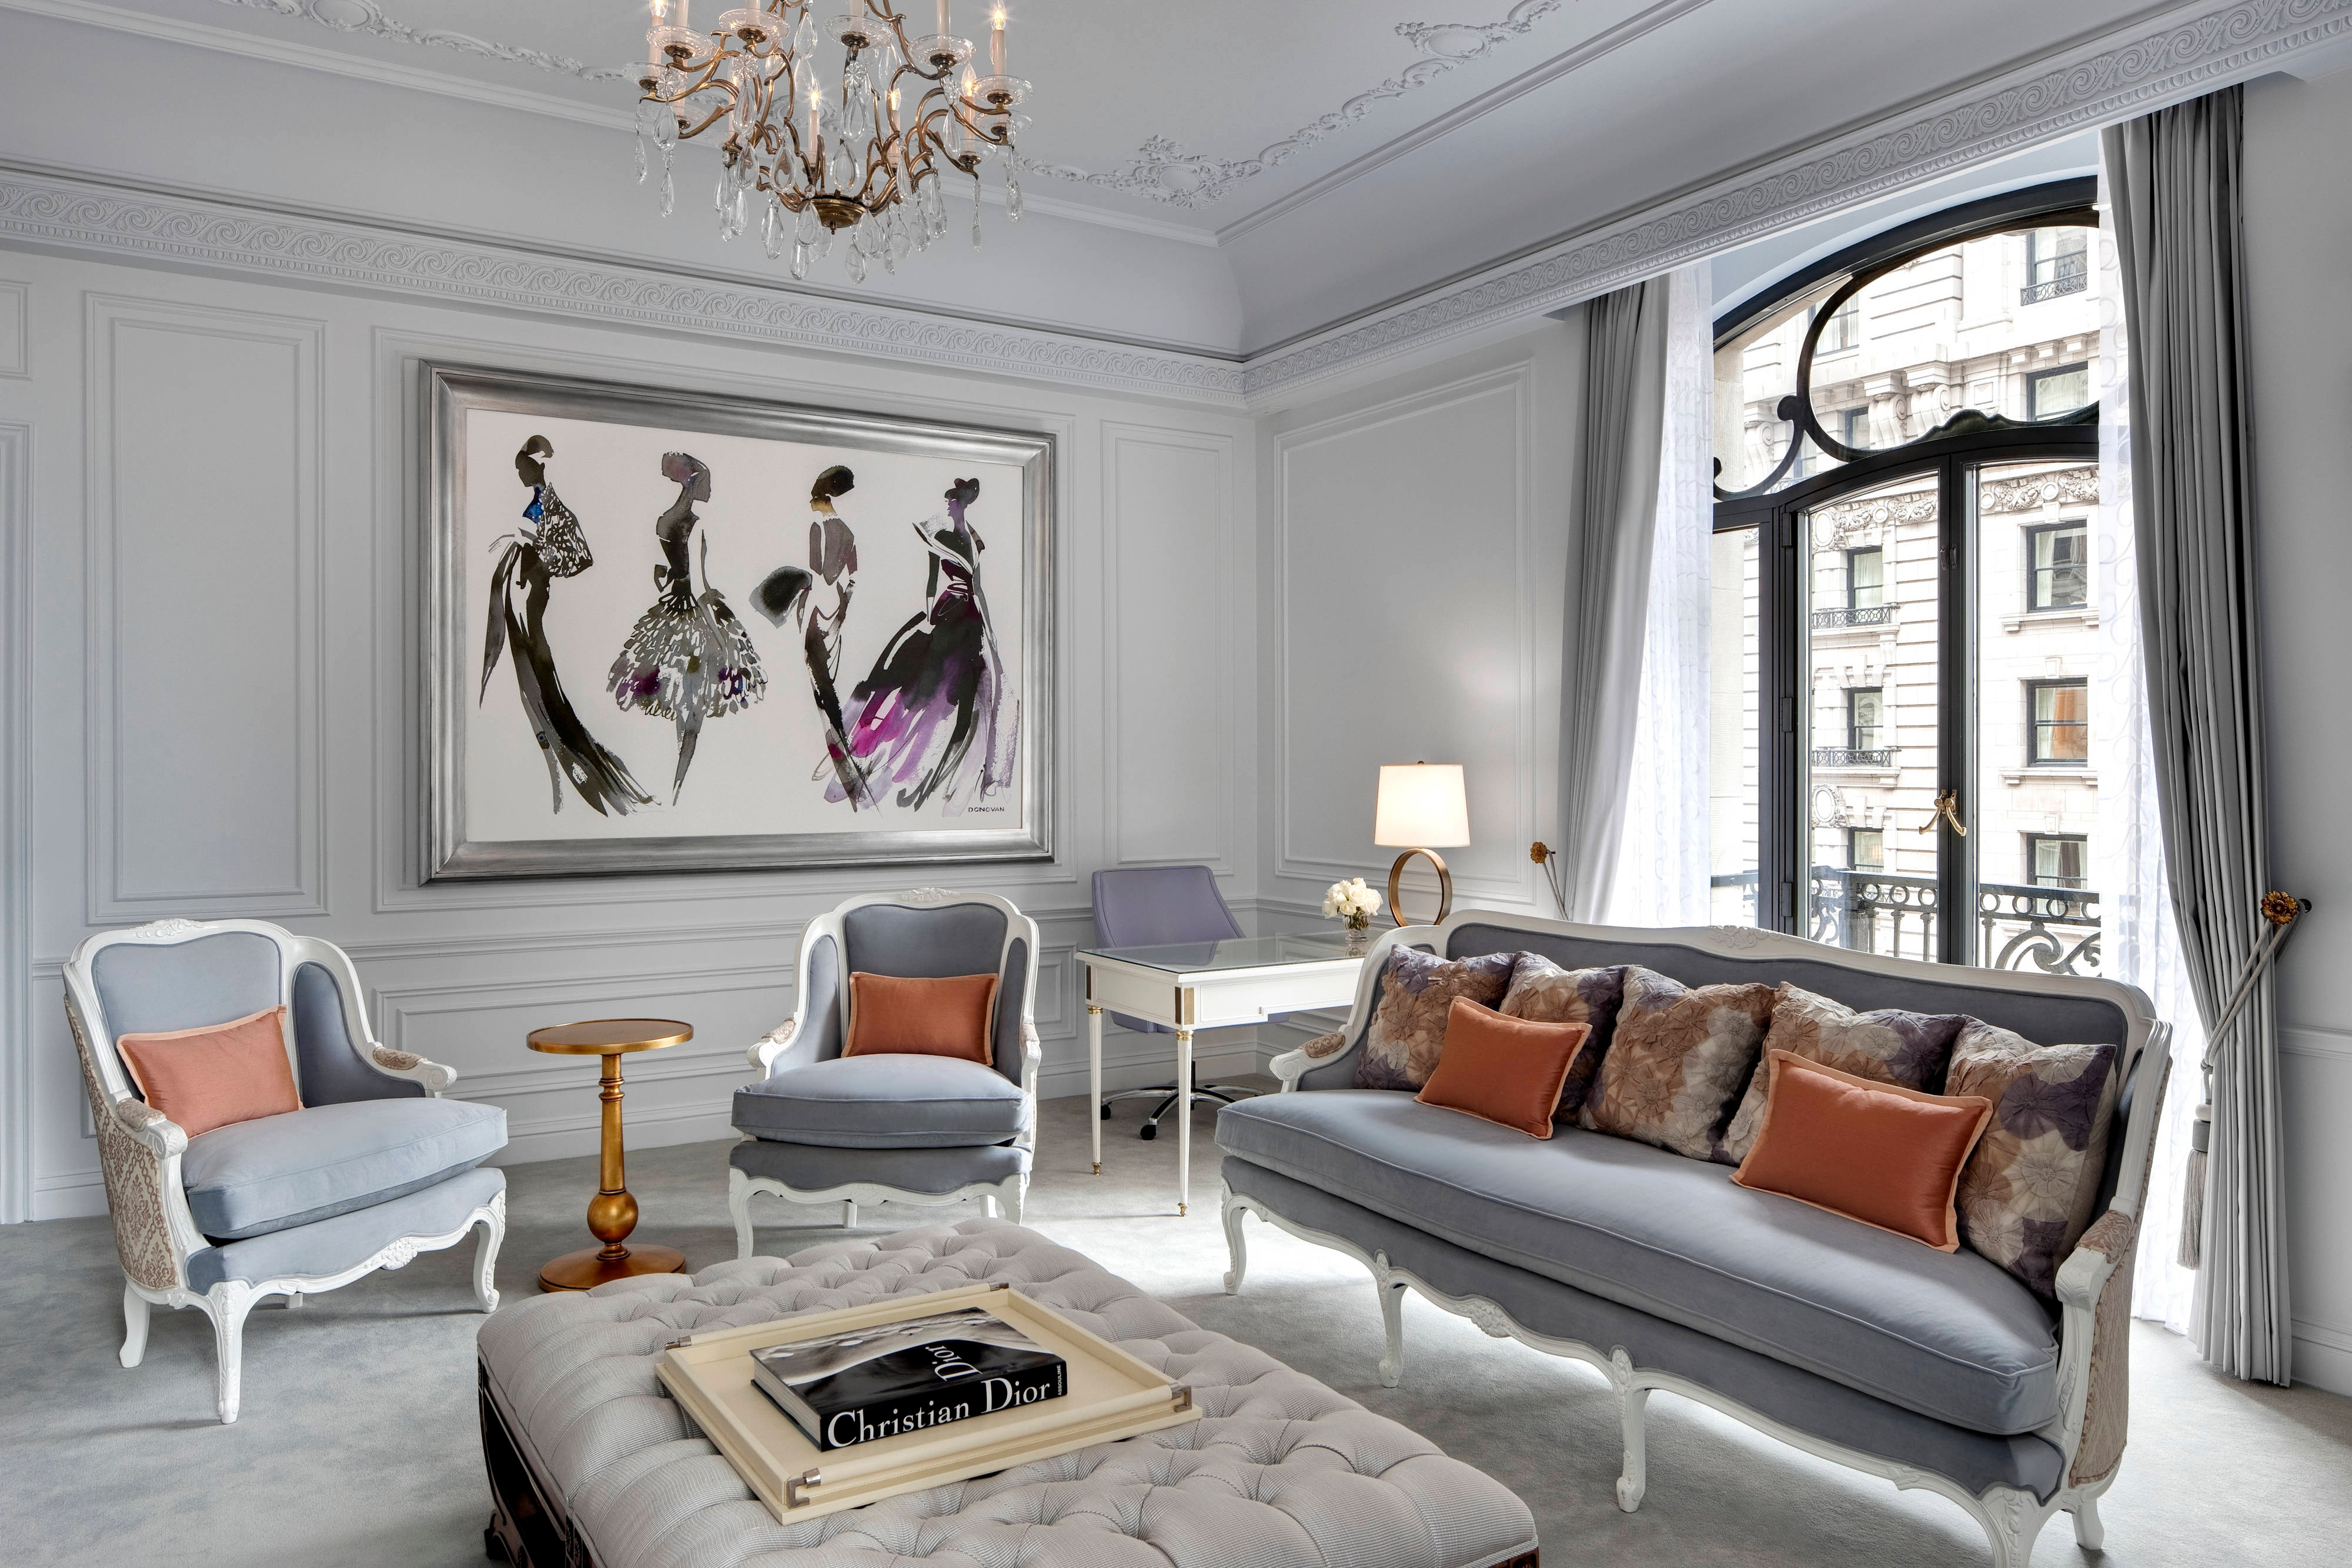 Dior Suite - Living Room